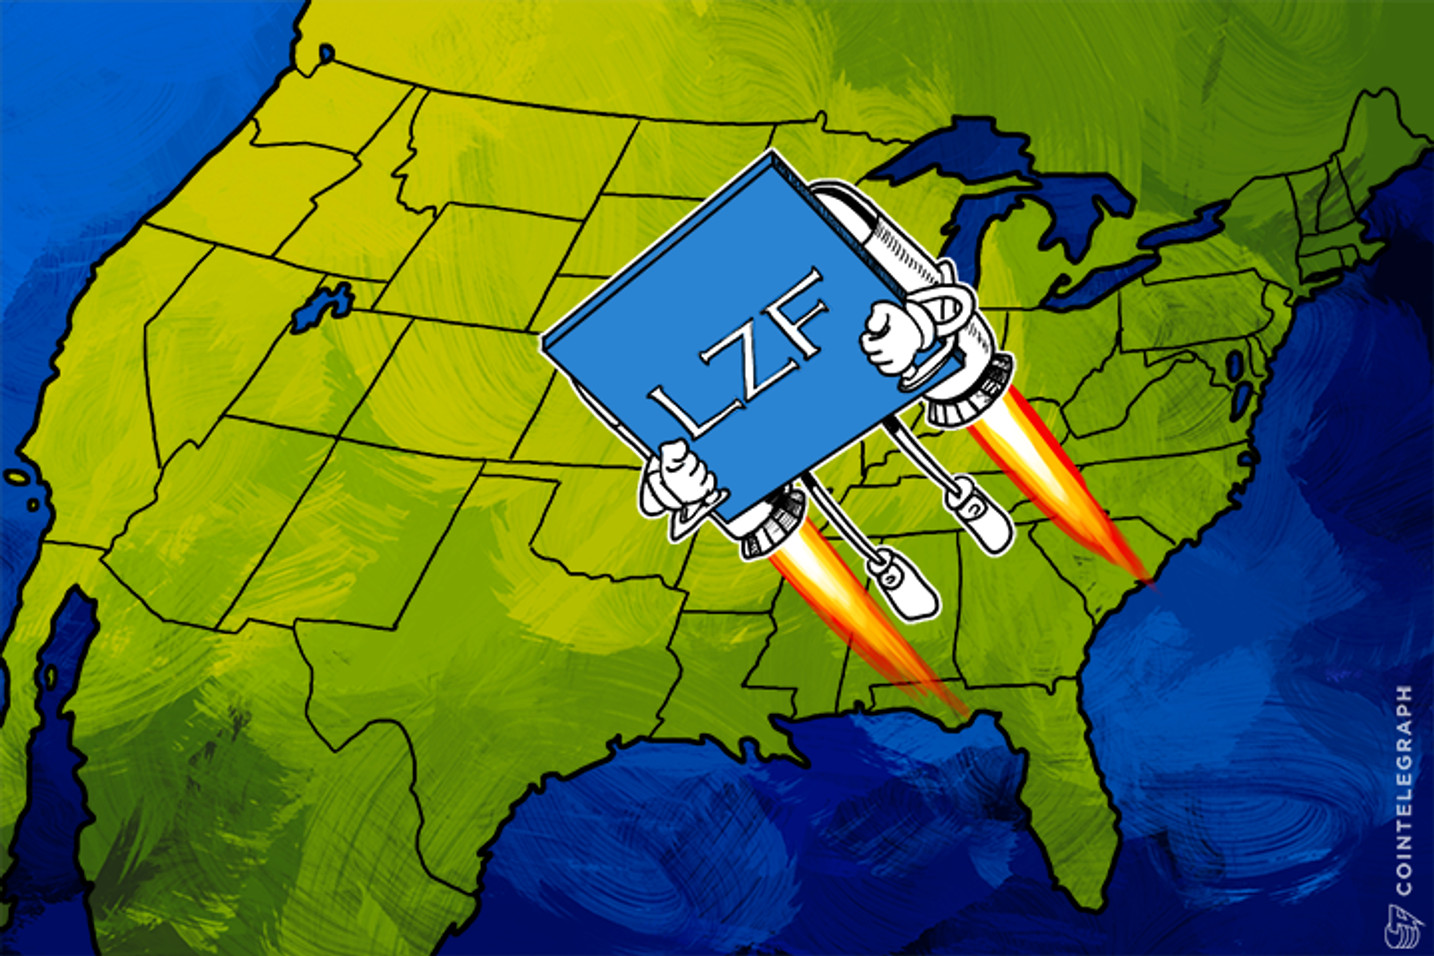 Bitcoin Exchange LZF Legally Launches in 49 States, Excluding New York